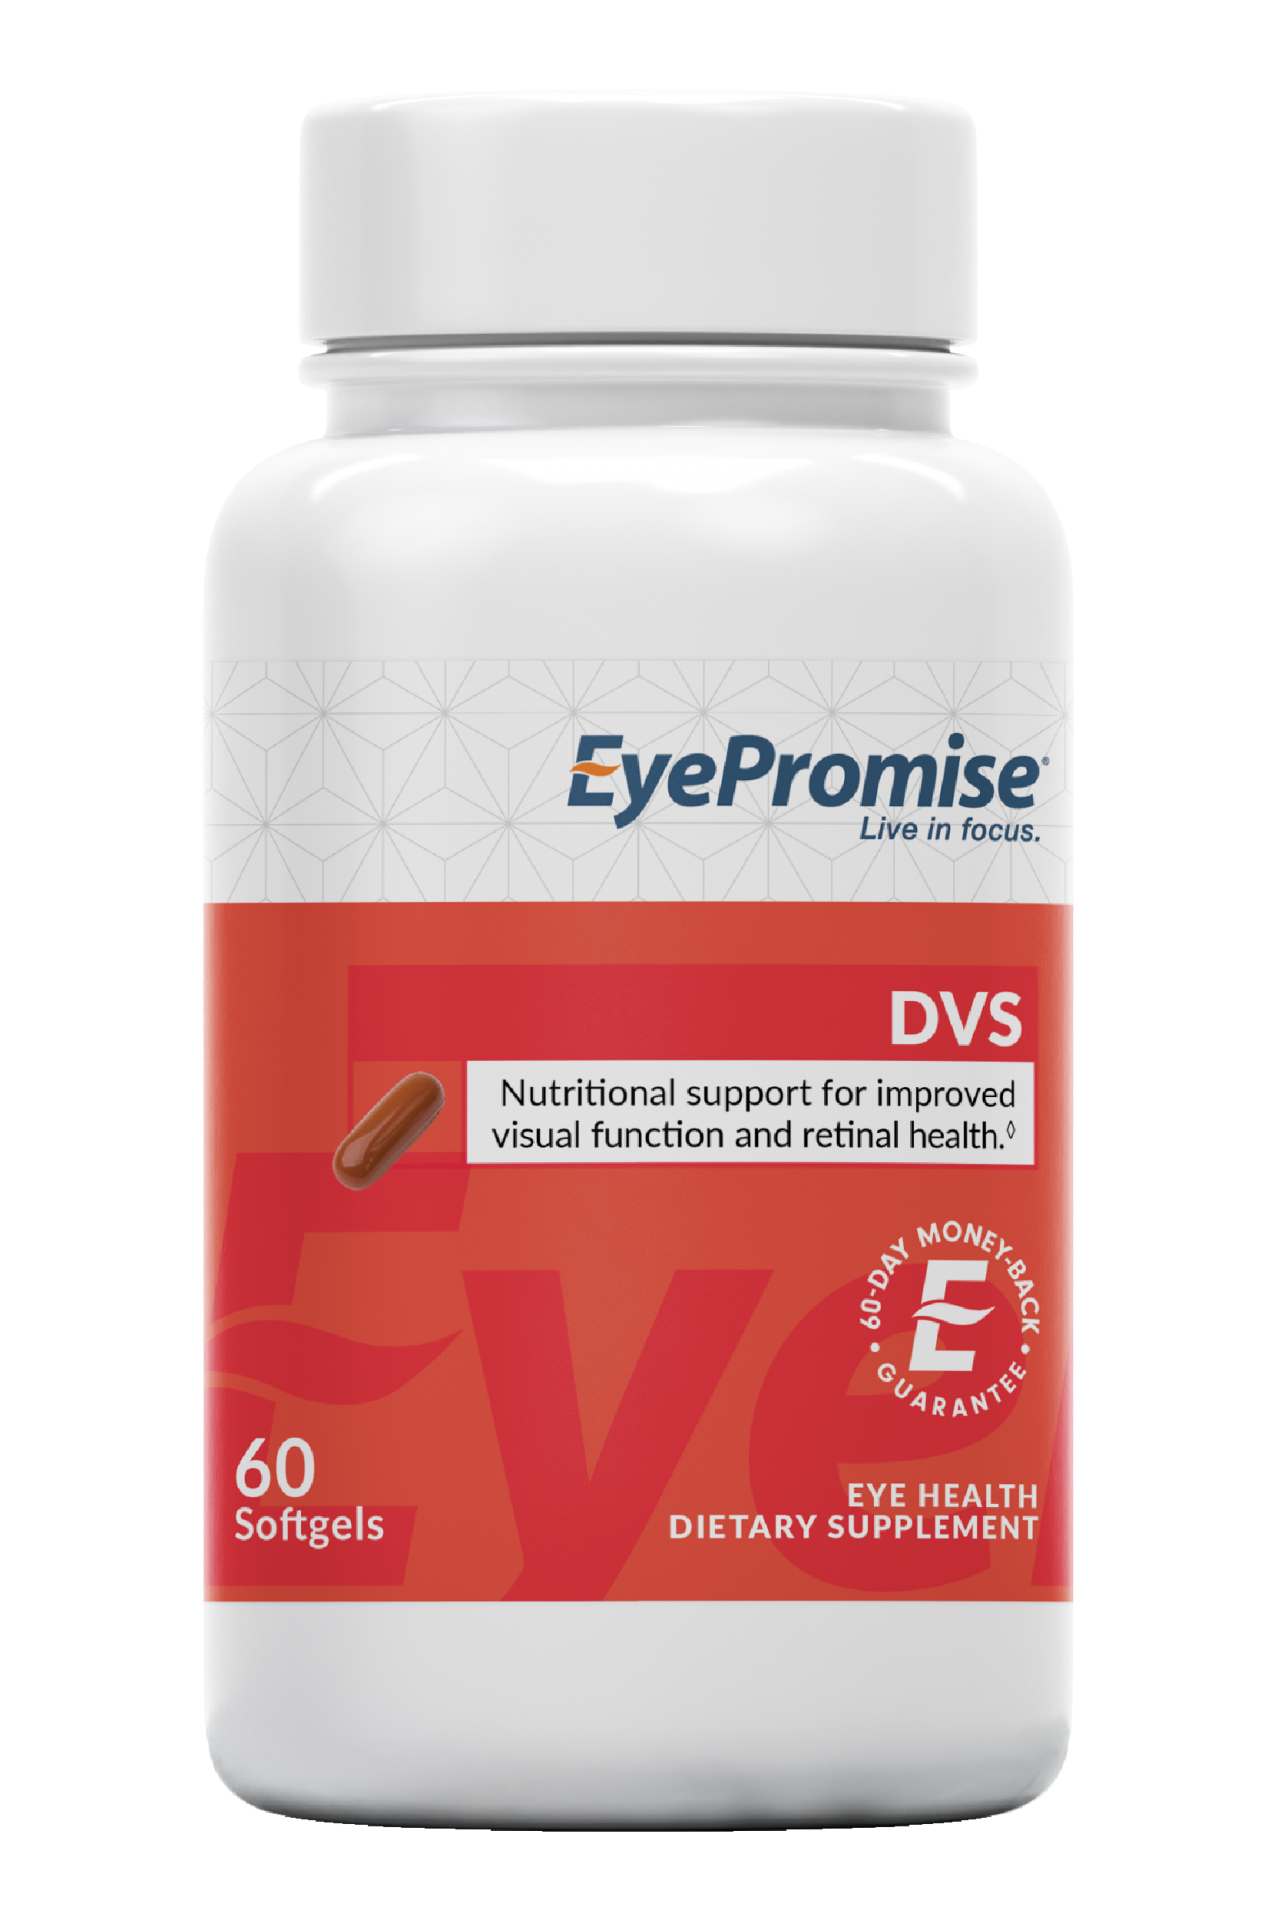 DVS-Bottle-EyePromise